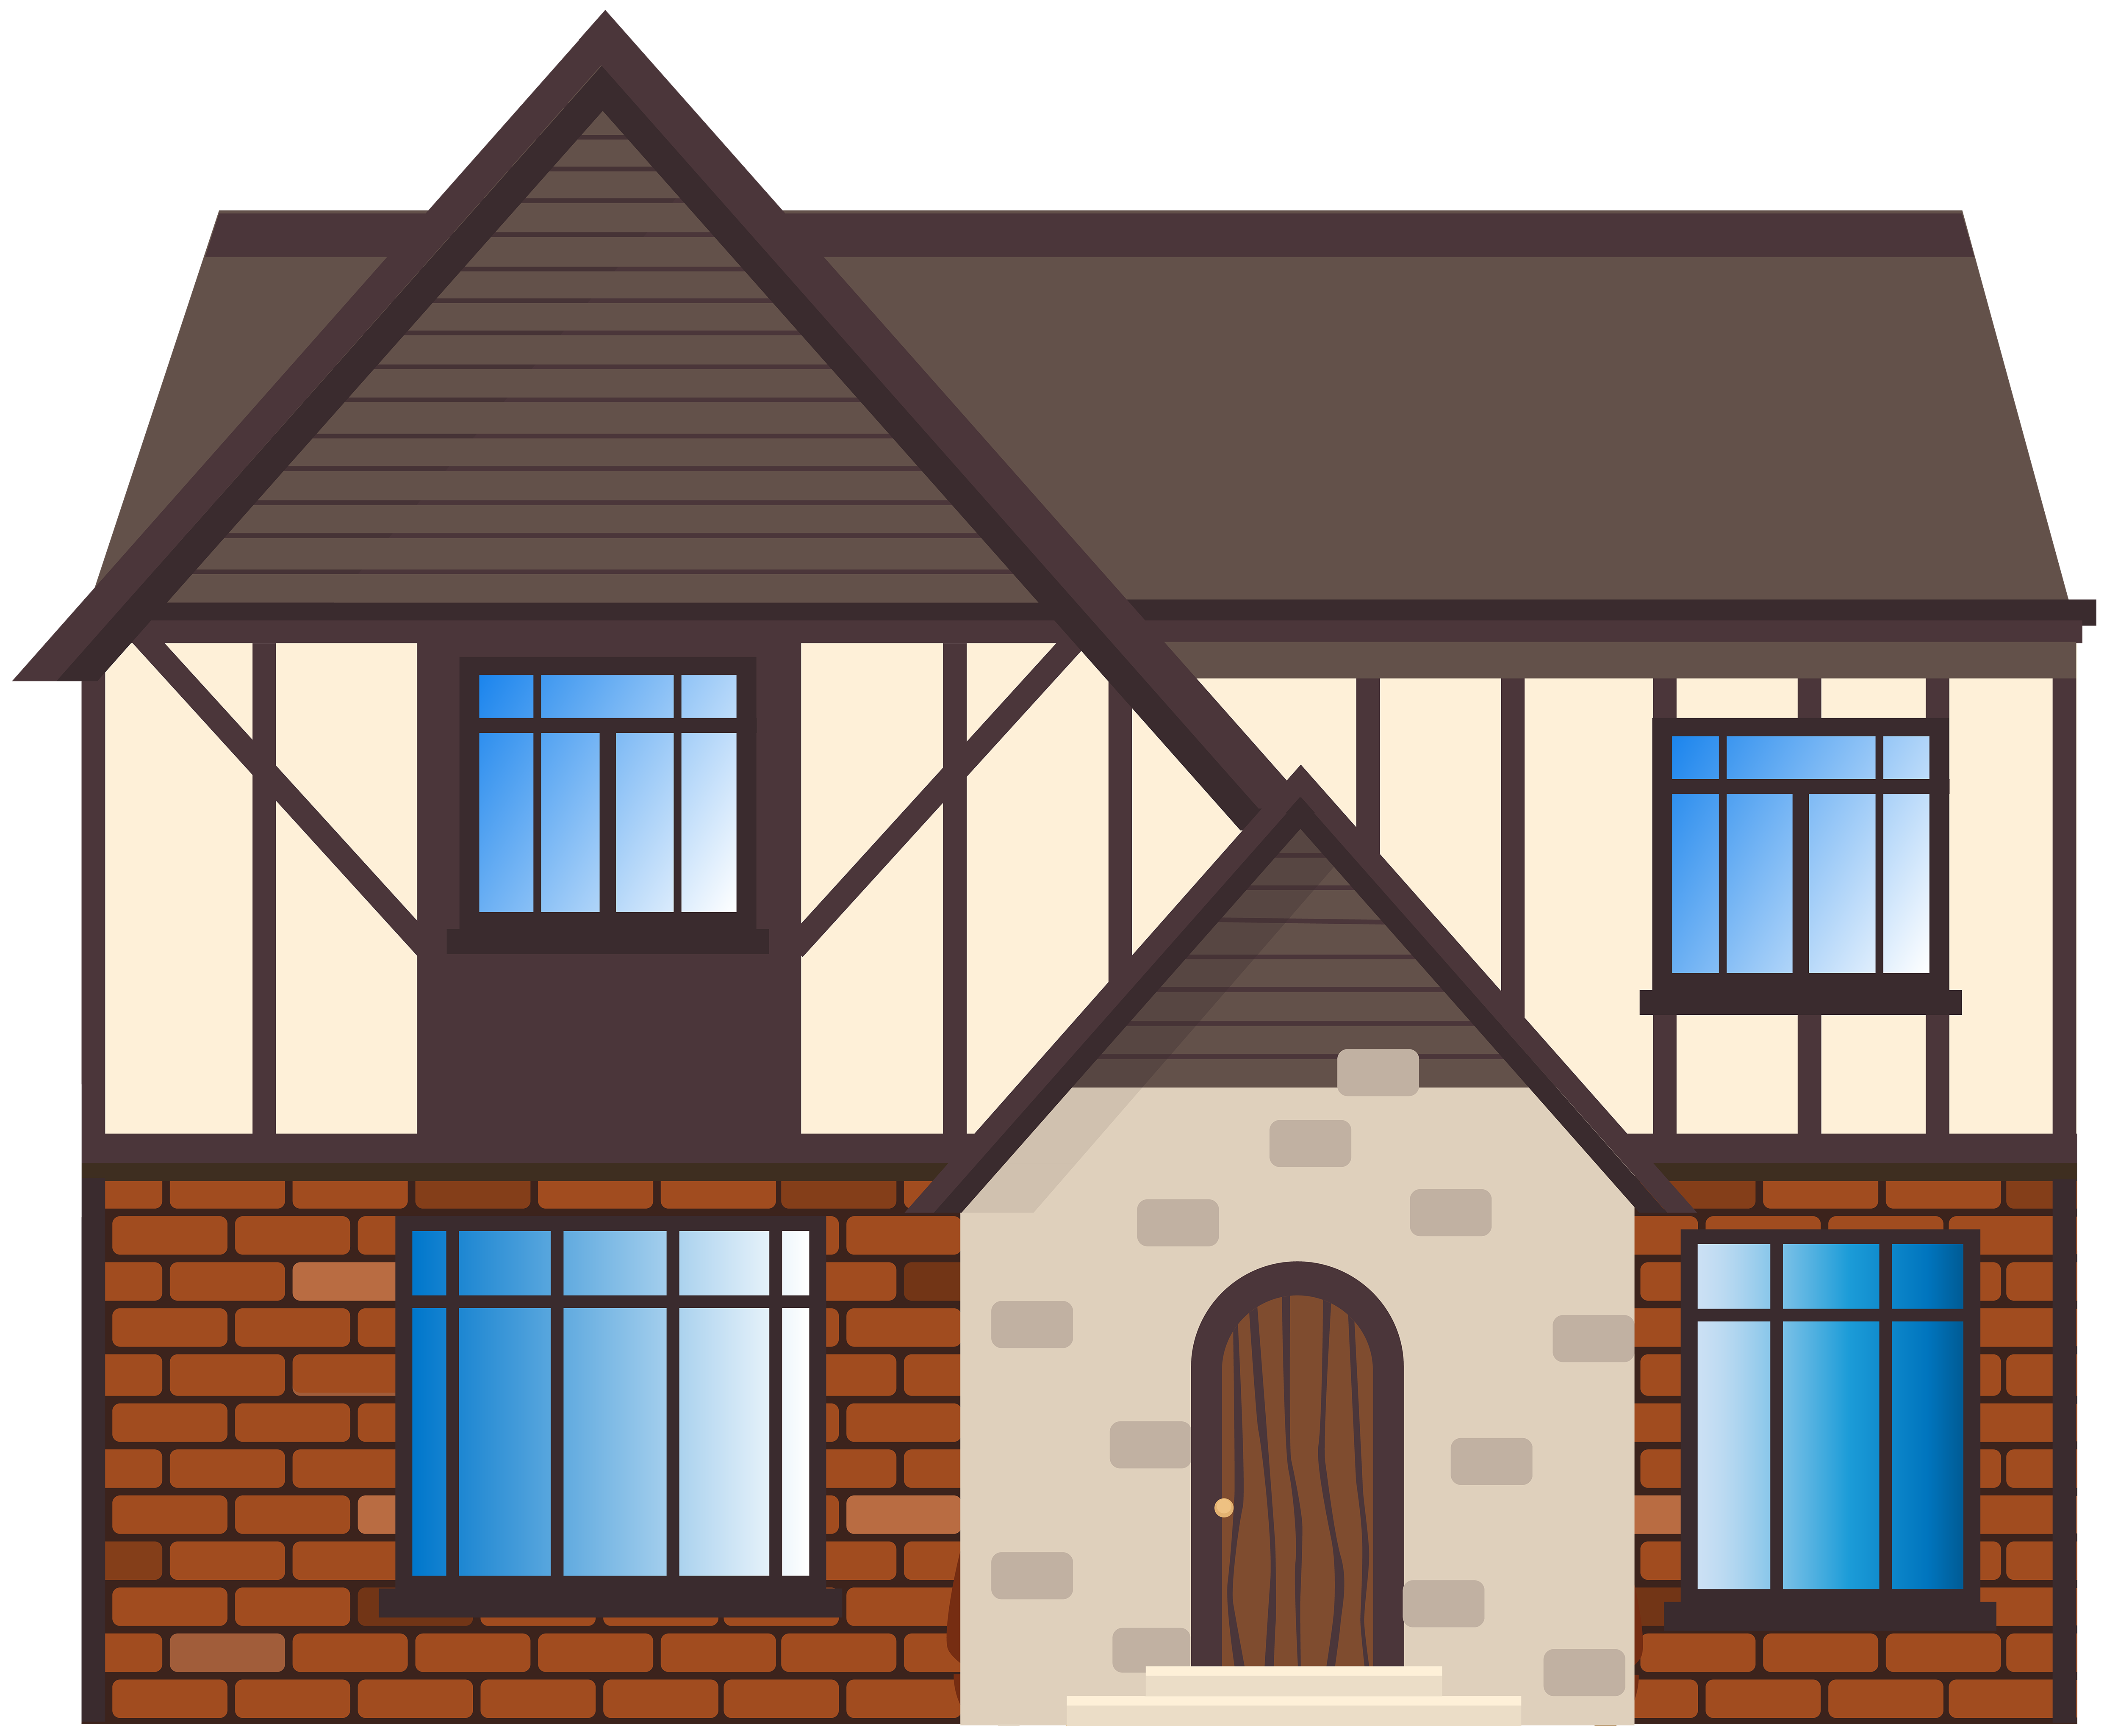 House windows clipart svg 95+ Cottage House Clipart Cottage House Clipart - Cottage Clipart ... svg